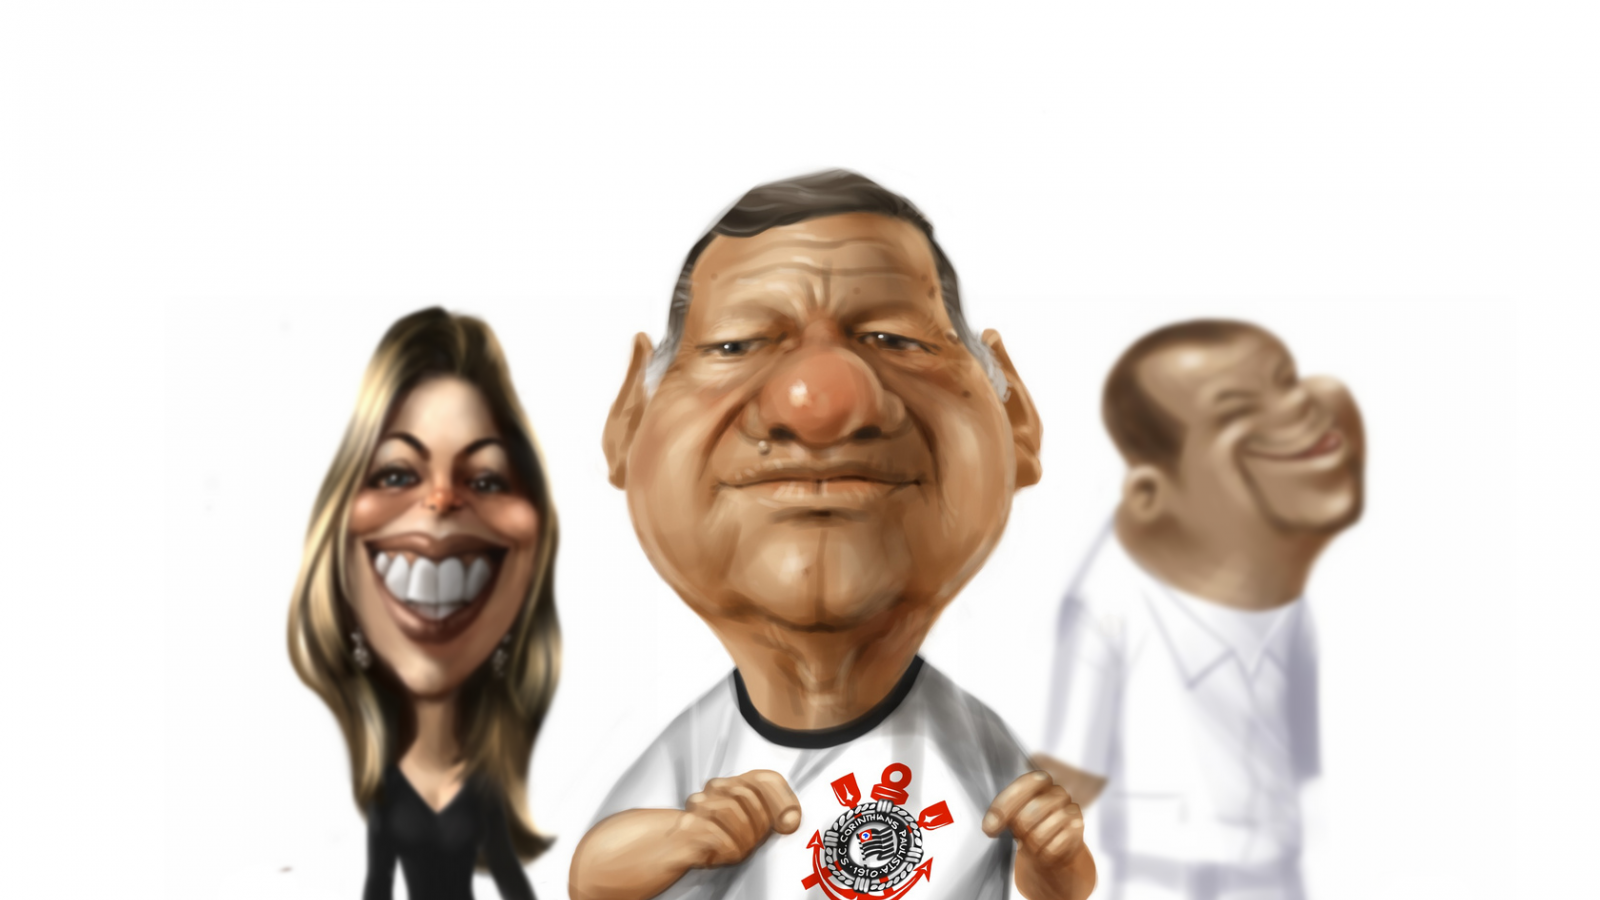 Amazing Caricatures Using iPad by Alex Leao